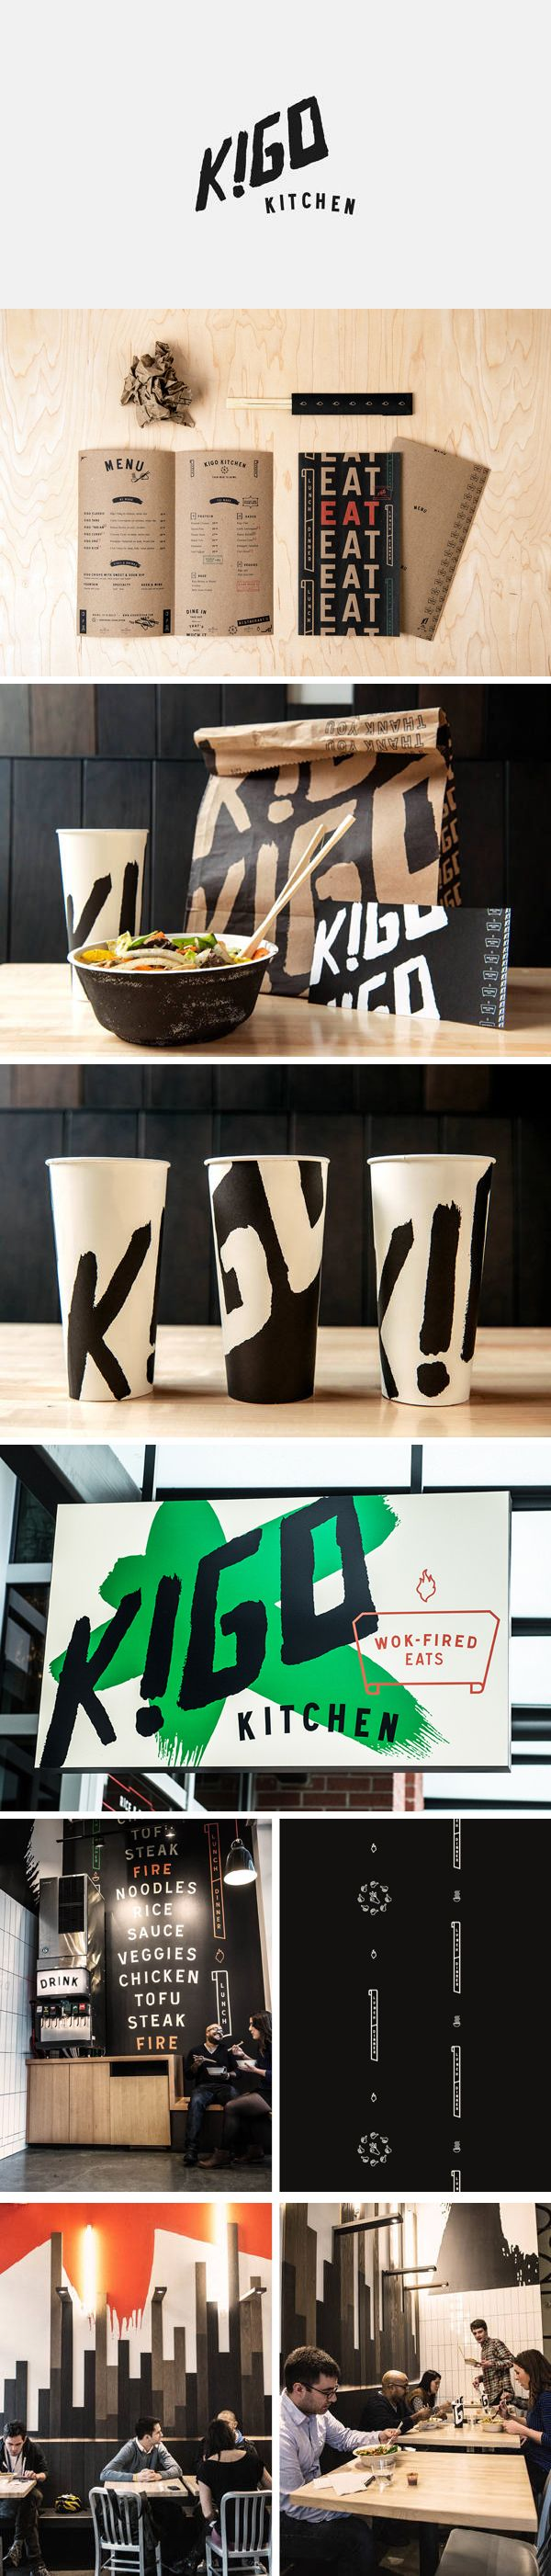 Kigo Kitchen, quick-fire lunch and dinner joint, design by Creature Design